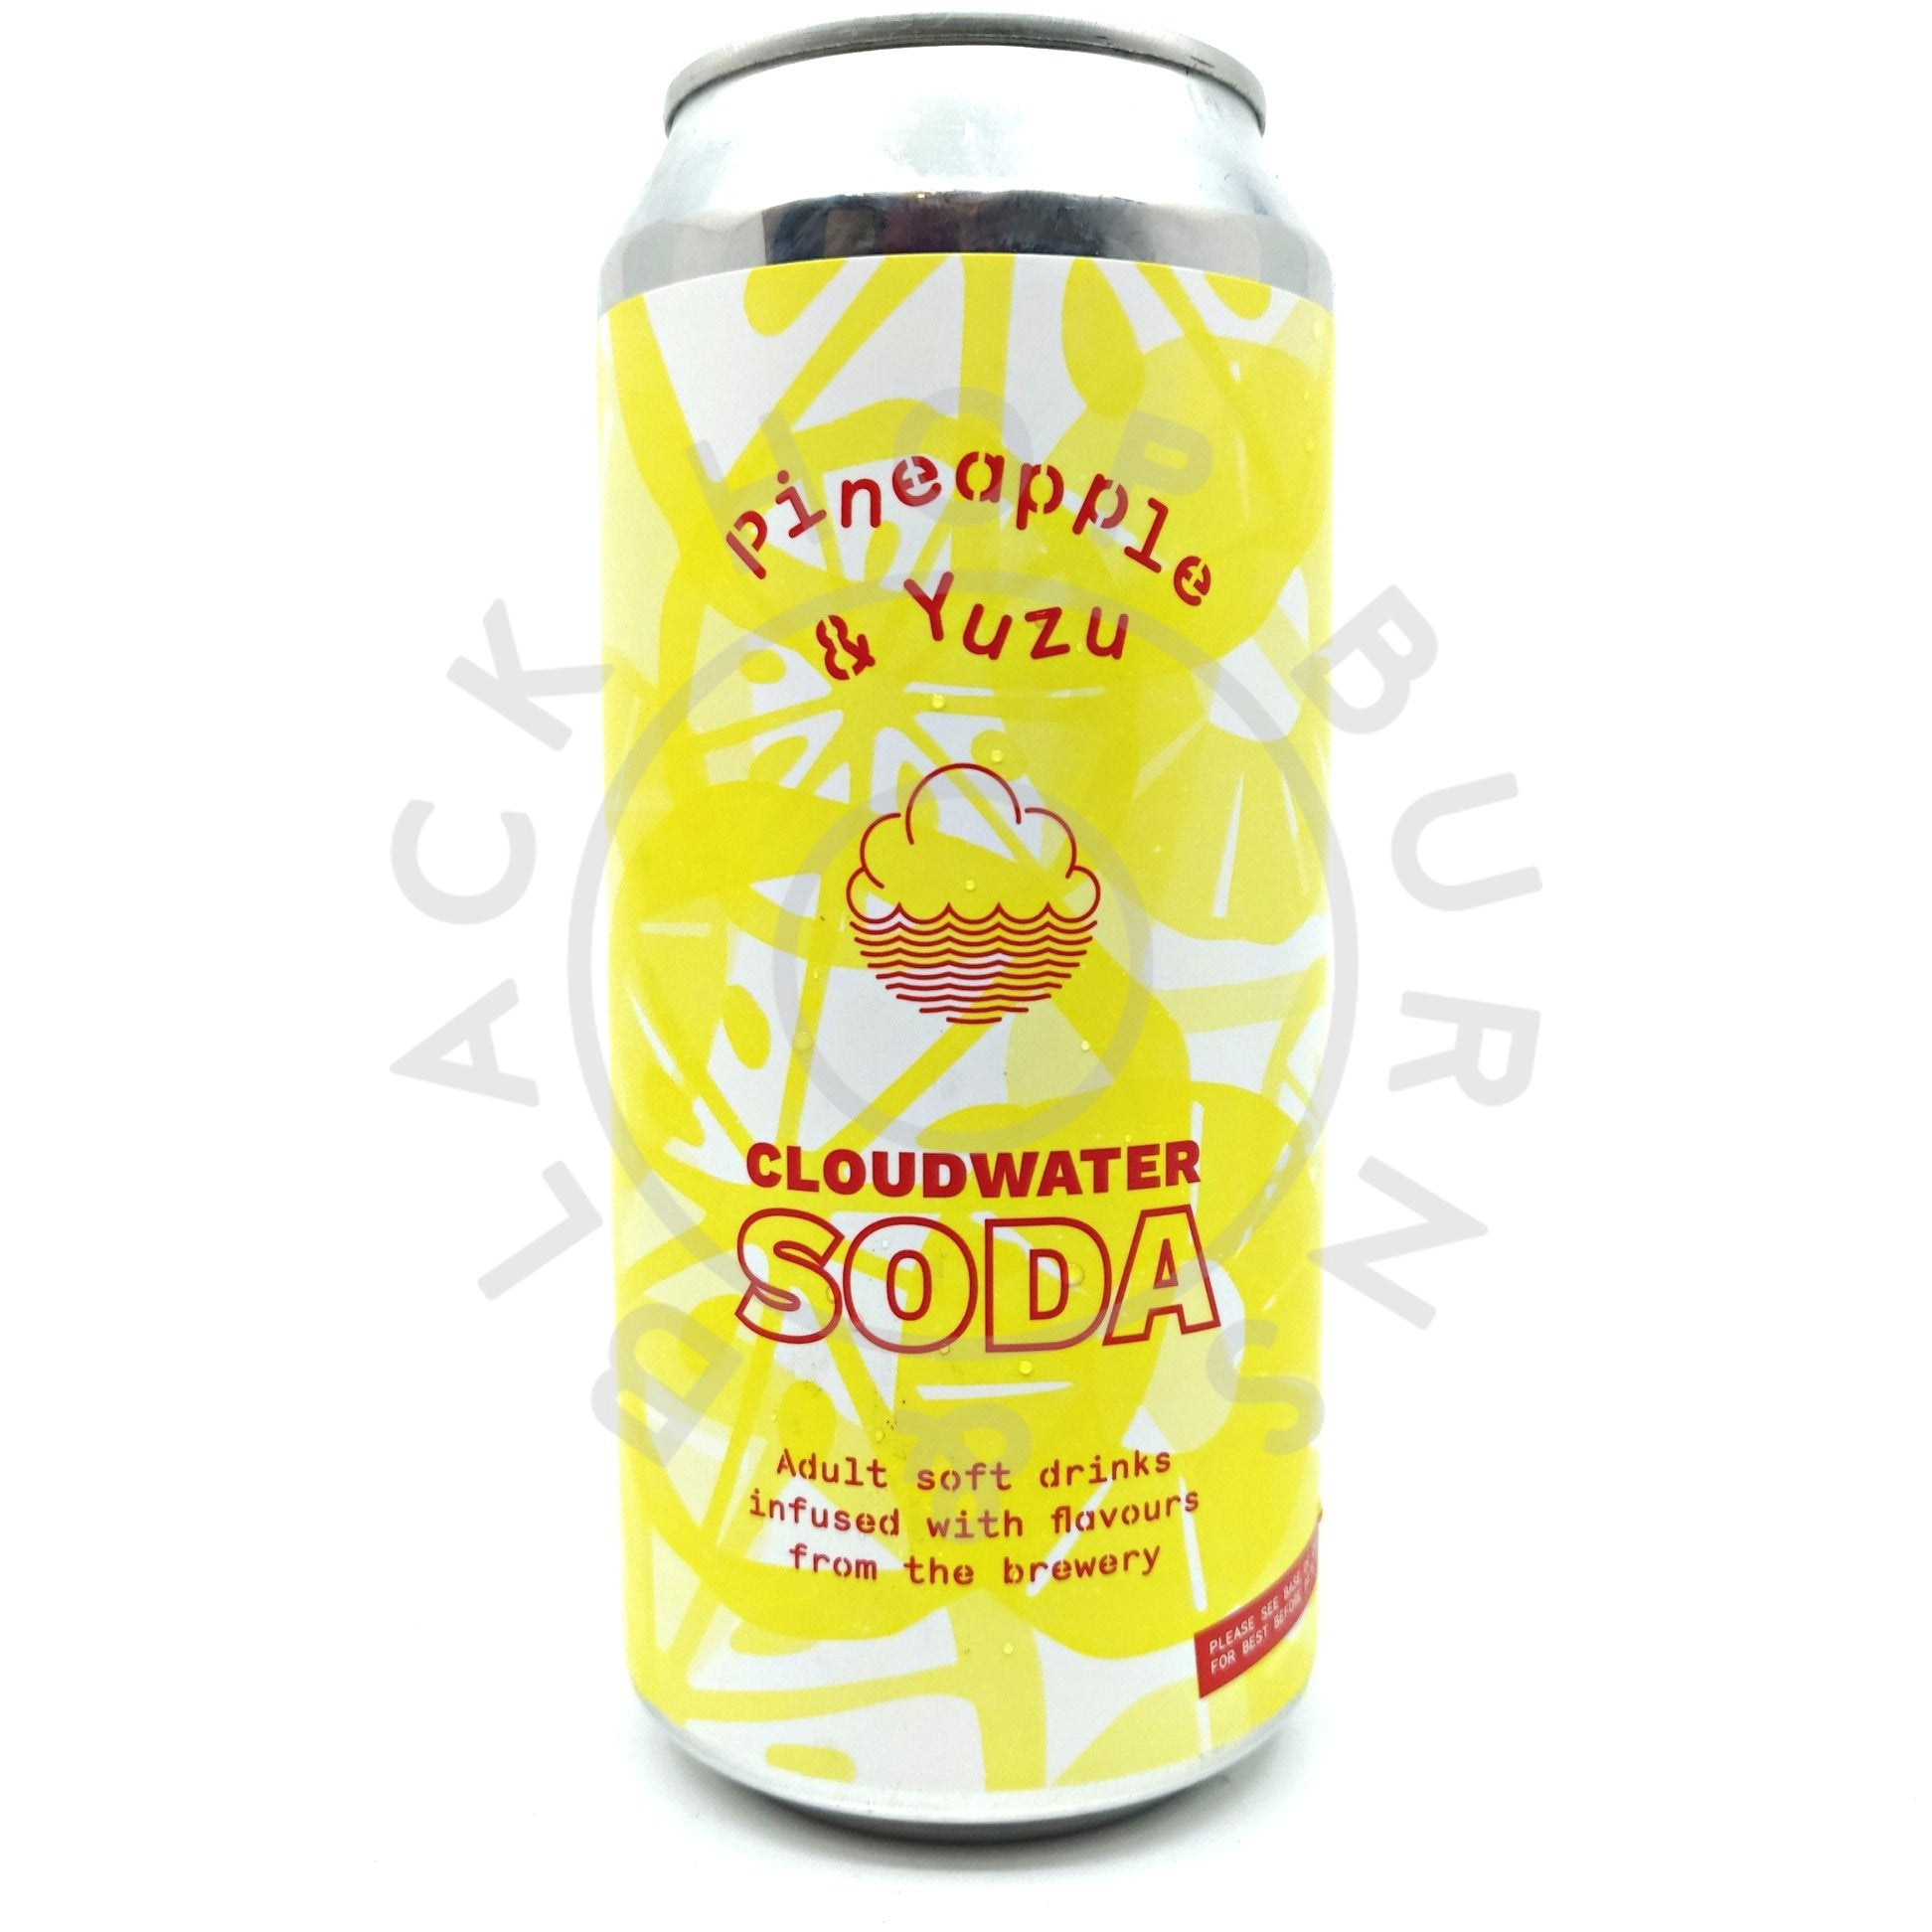 Cloudwater Soda Pineapple & Yuzu (440ml can)-Hop Burns & Black